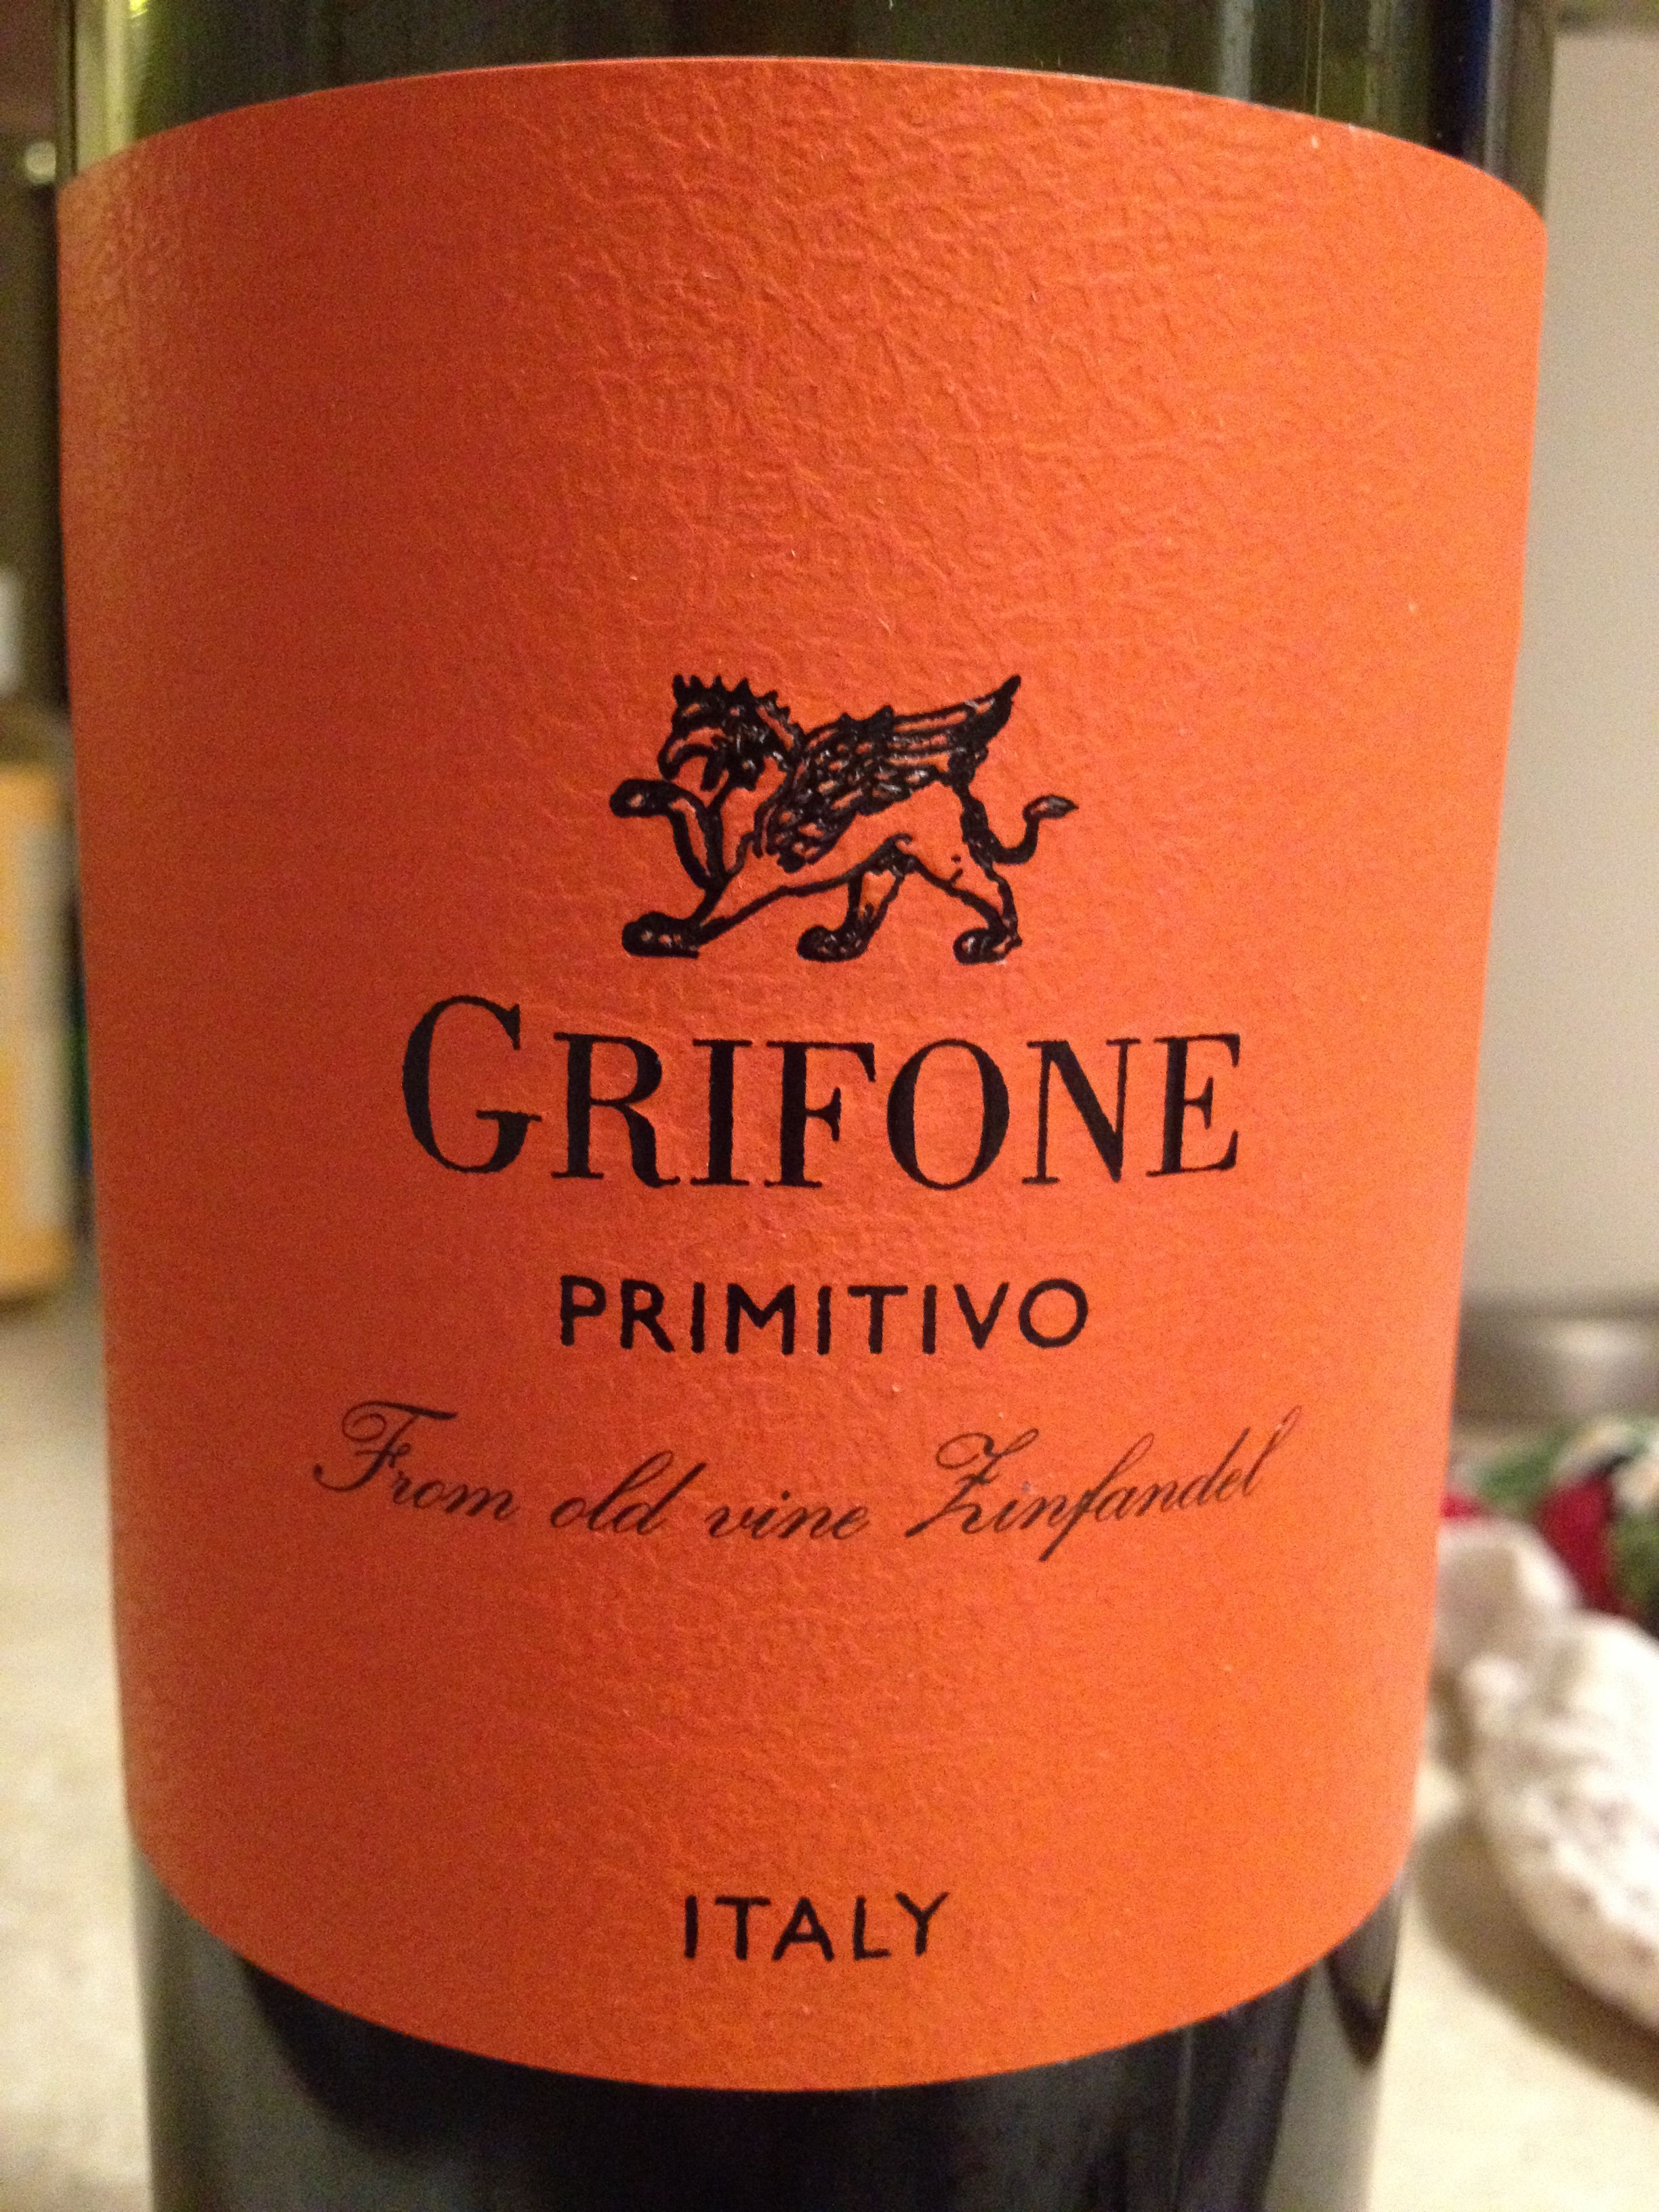 Grifone Primitivo Wine Label Packaging Wine Lovers Wine